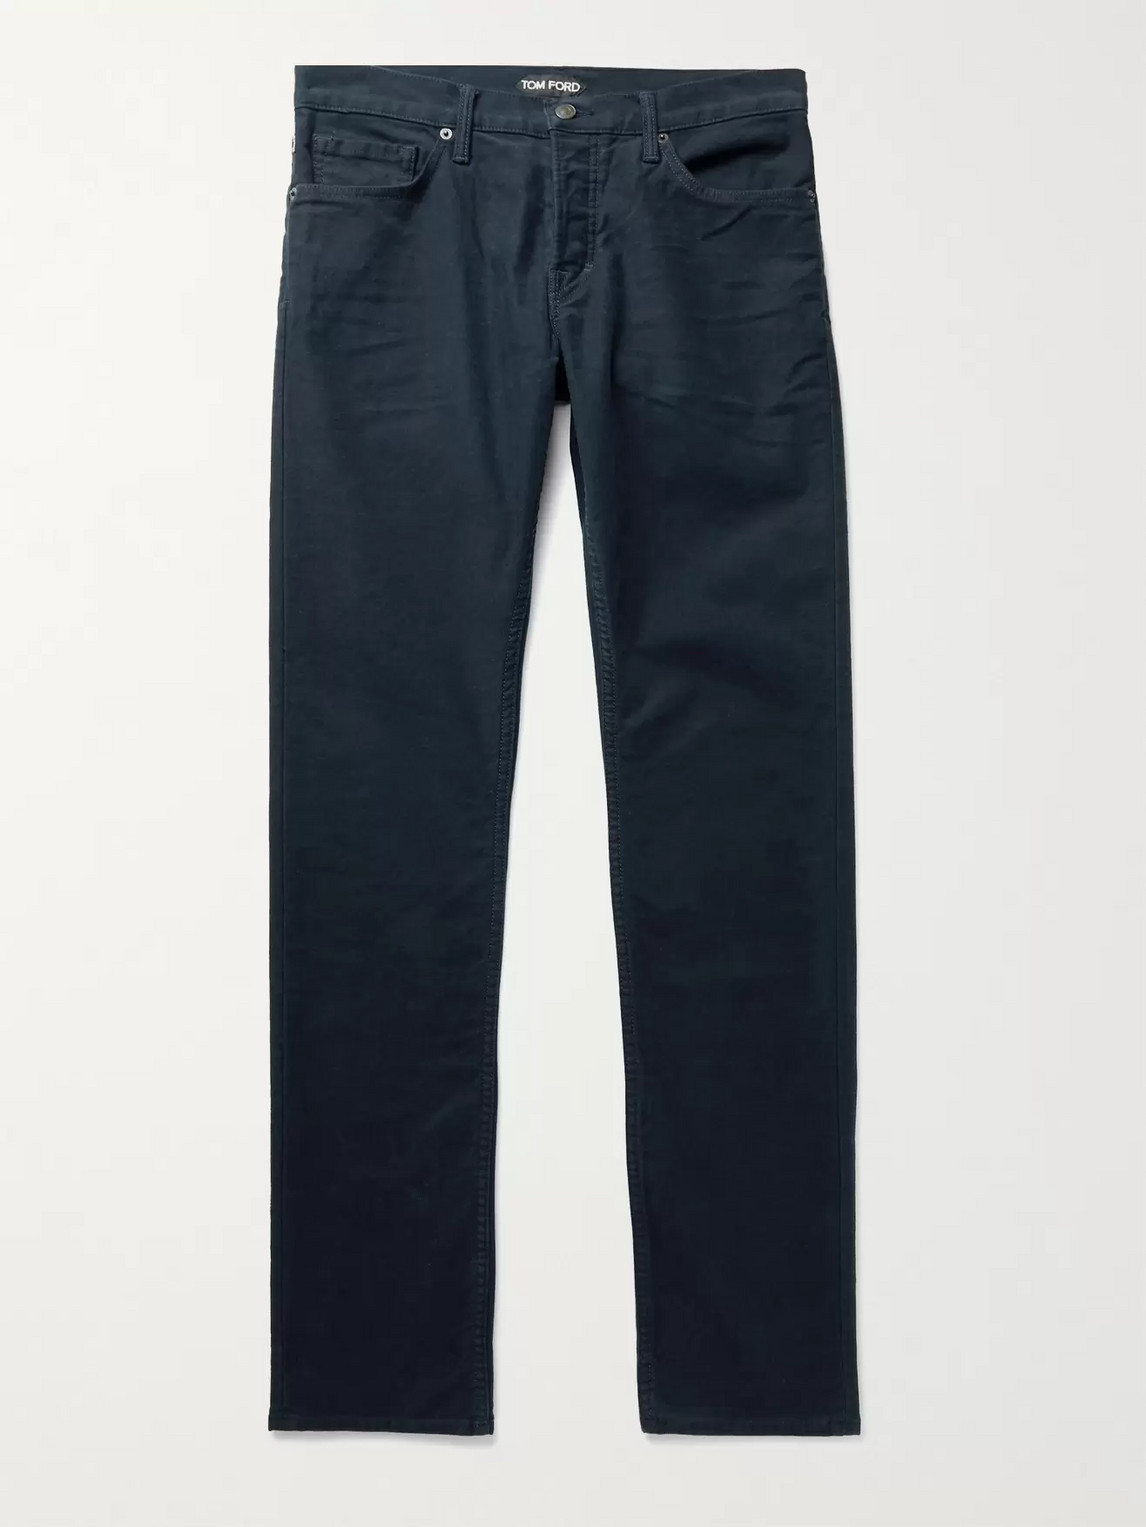 Tom Ford Slim-fit Cotton-blend Moleskin Trousers In Blue